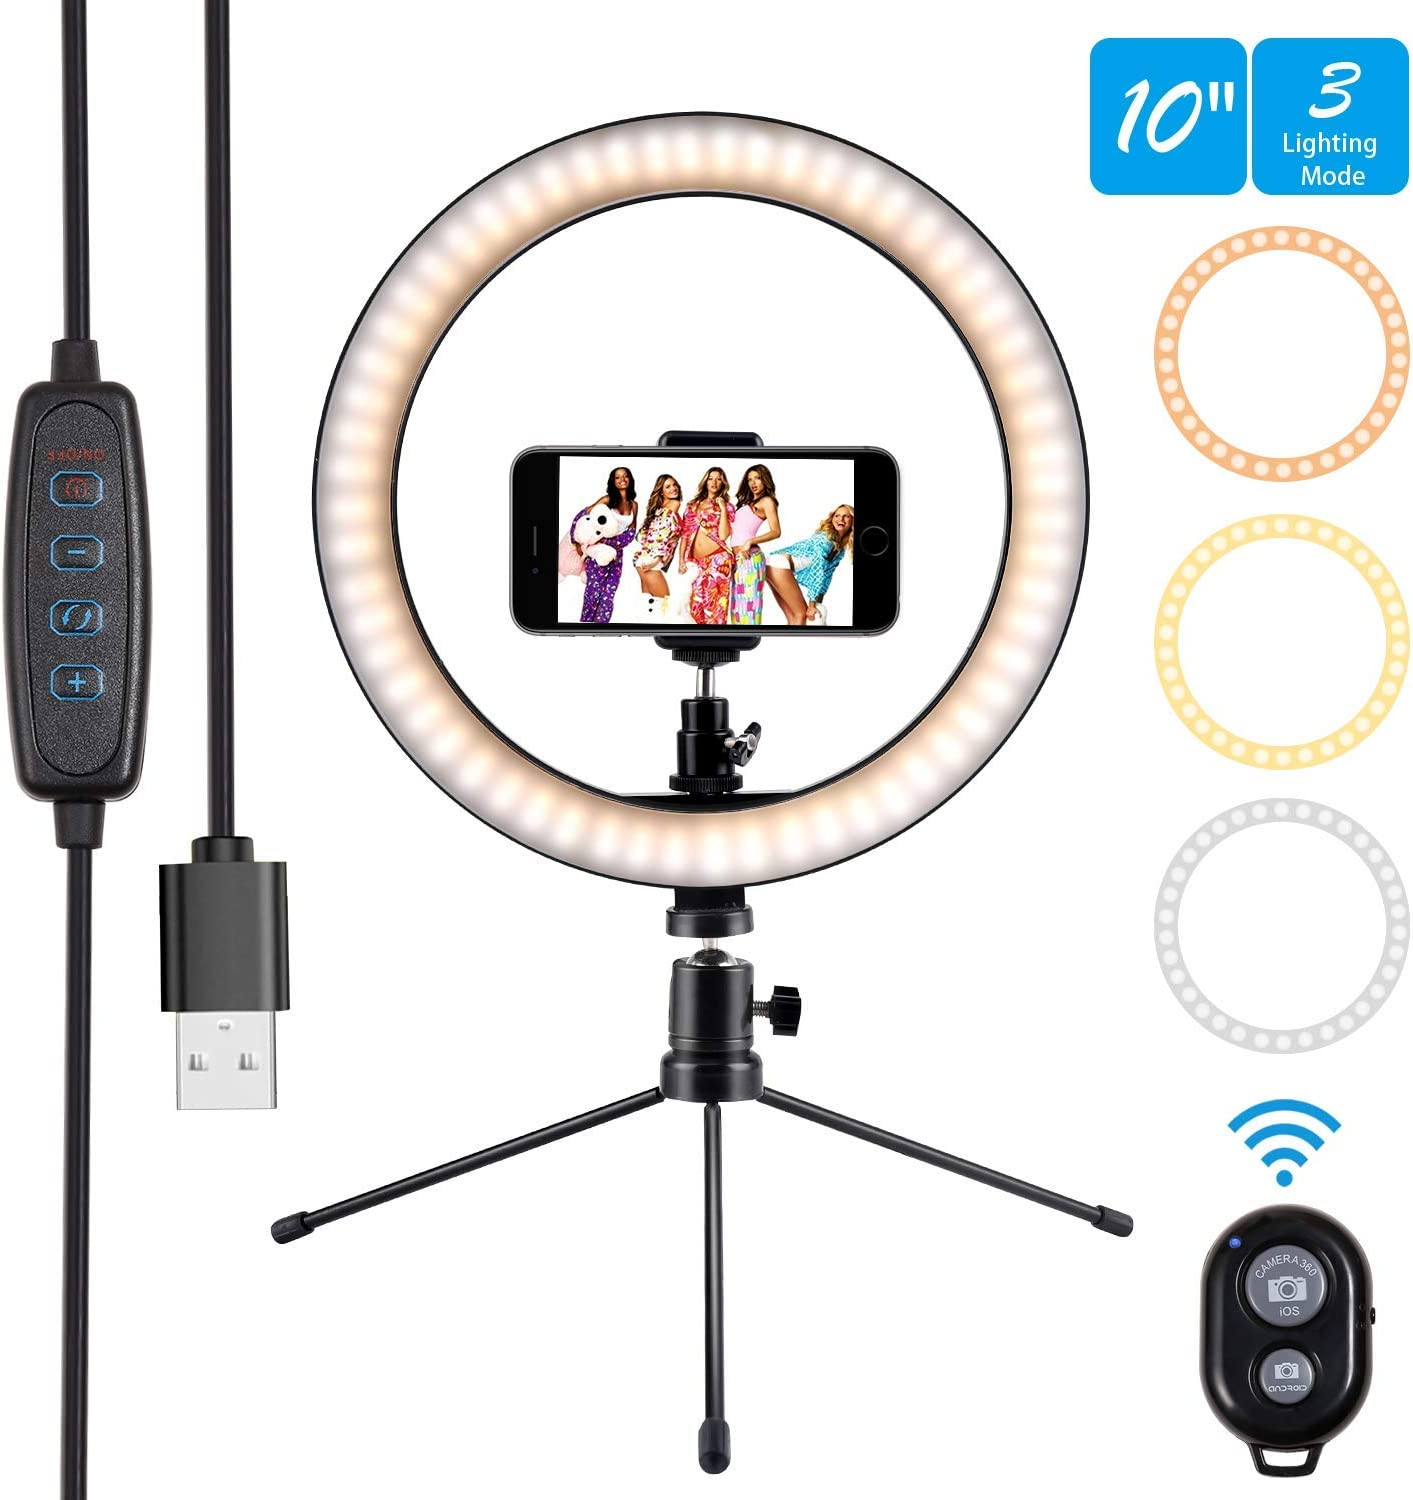 """10"""" Ring Light Selfie Light Ring with Tripod Stand & Cell Phone Holder and Remote Control 3000-5500K 120 Bulbs Dimmable Beauty Desktop Ringlight for YouTube Video/Live Stream/Makeup/Photography"""